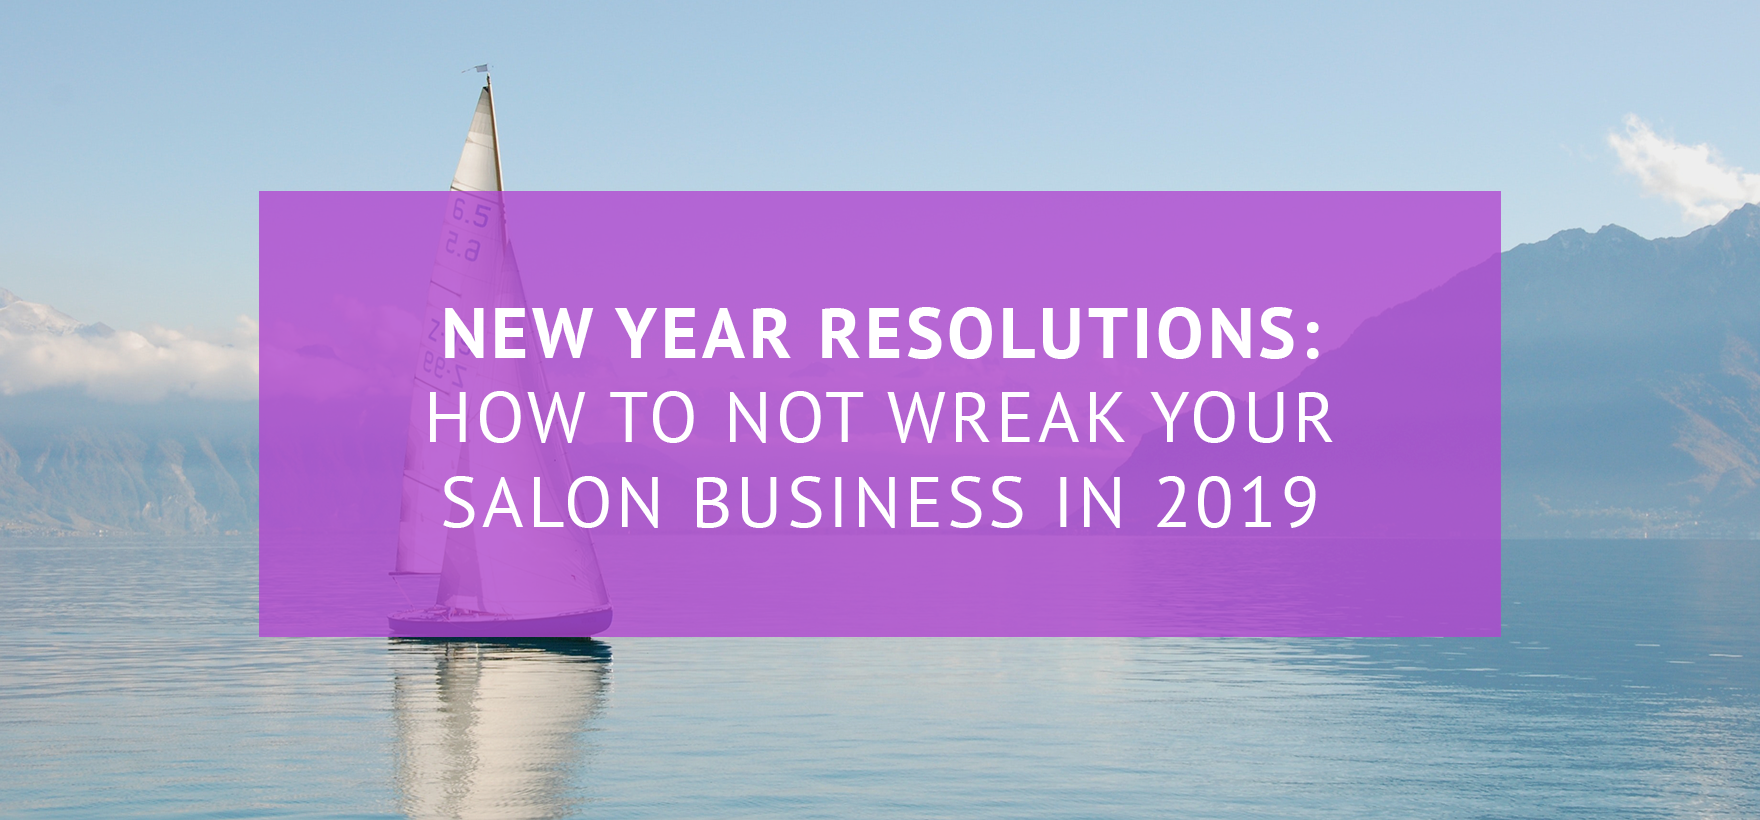 New Year resolutions: How to not wreck your salon business in 2019